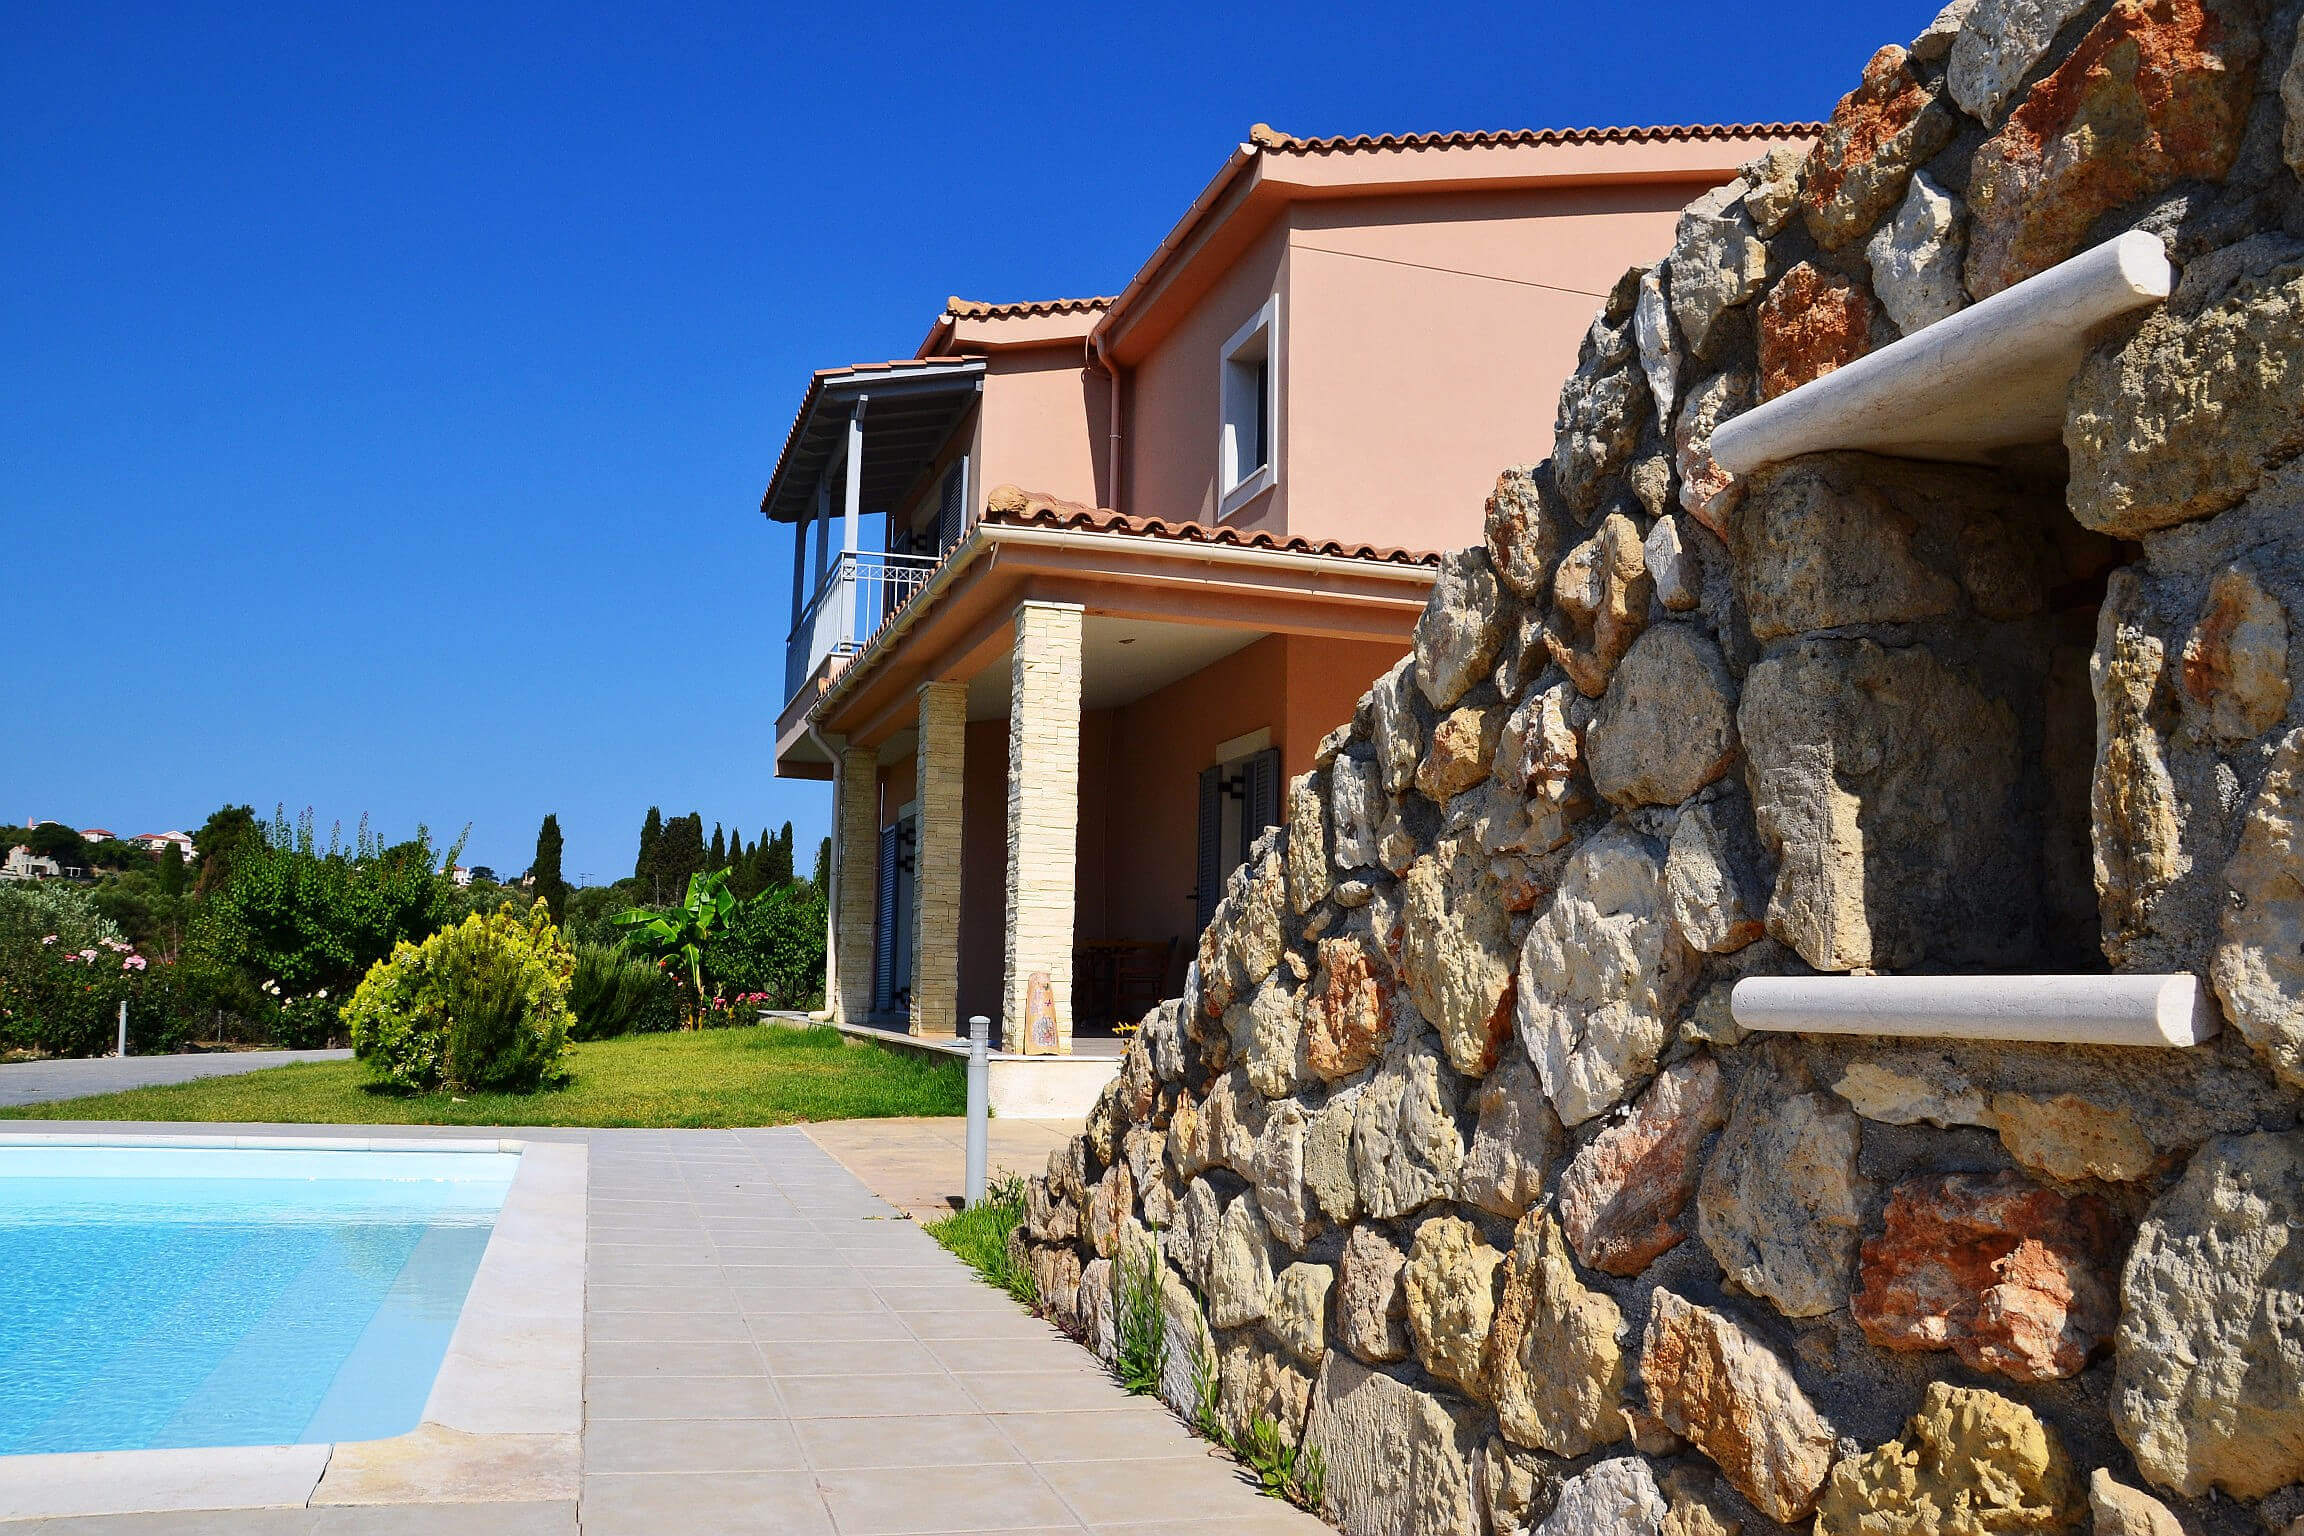 Kefalonia villas: lovely 4 bedroom villa with swimming pool, Kefalonia, Greece. Kefalonia hotels.